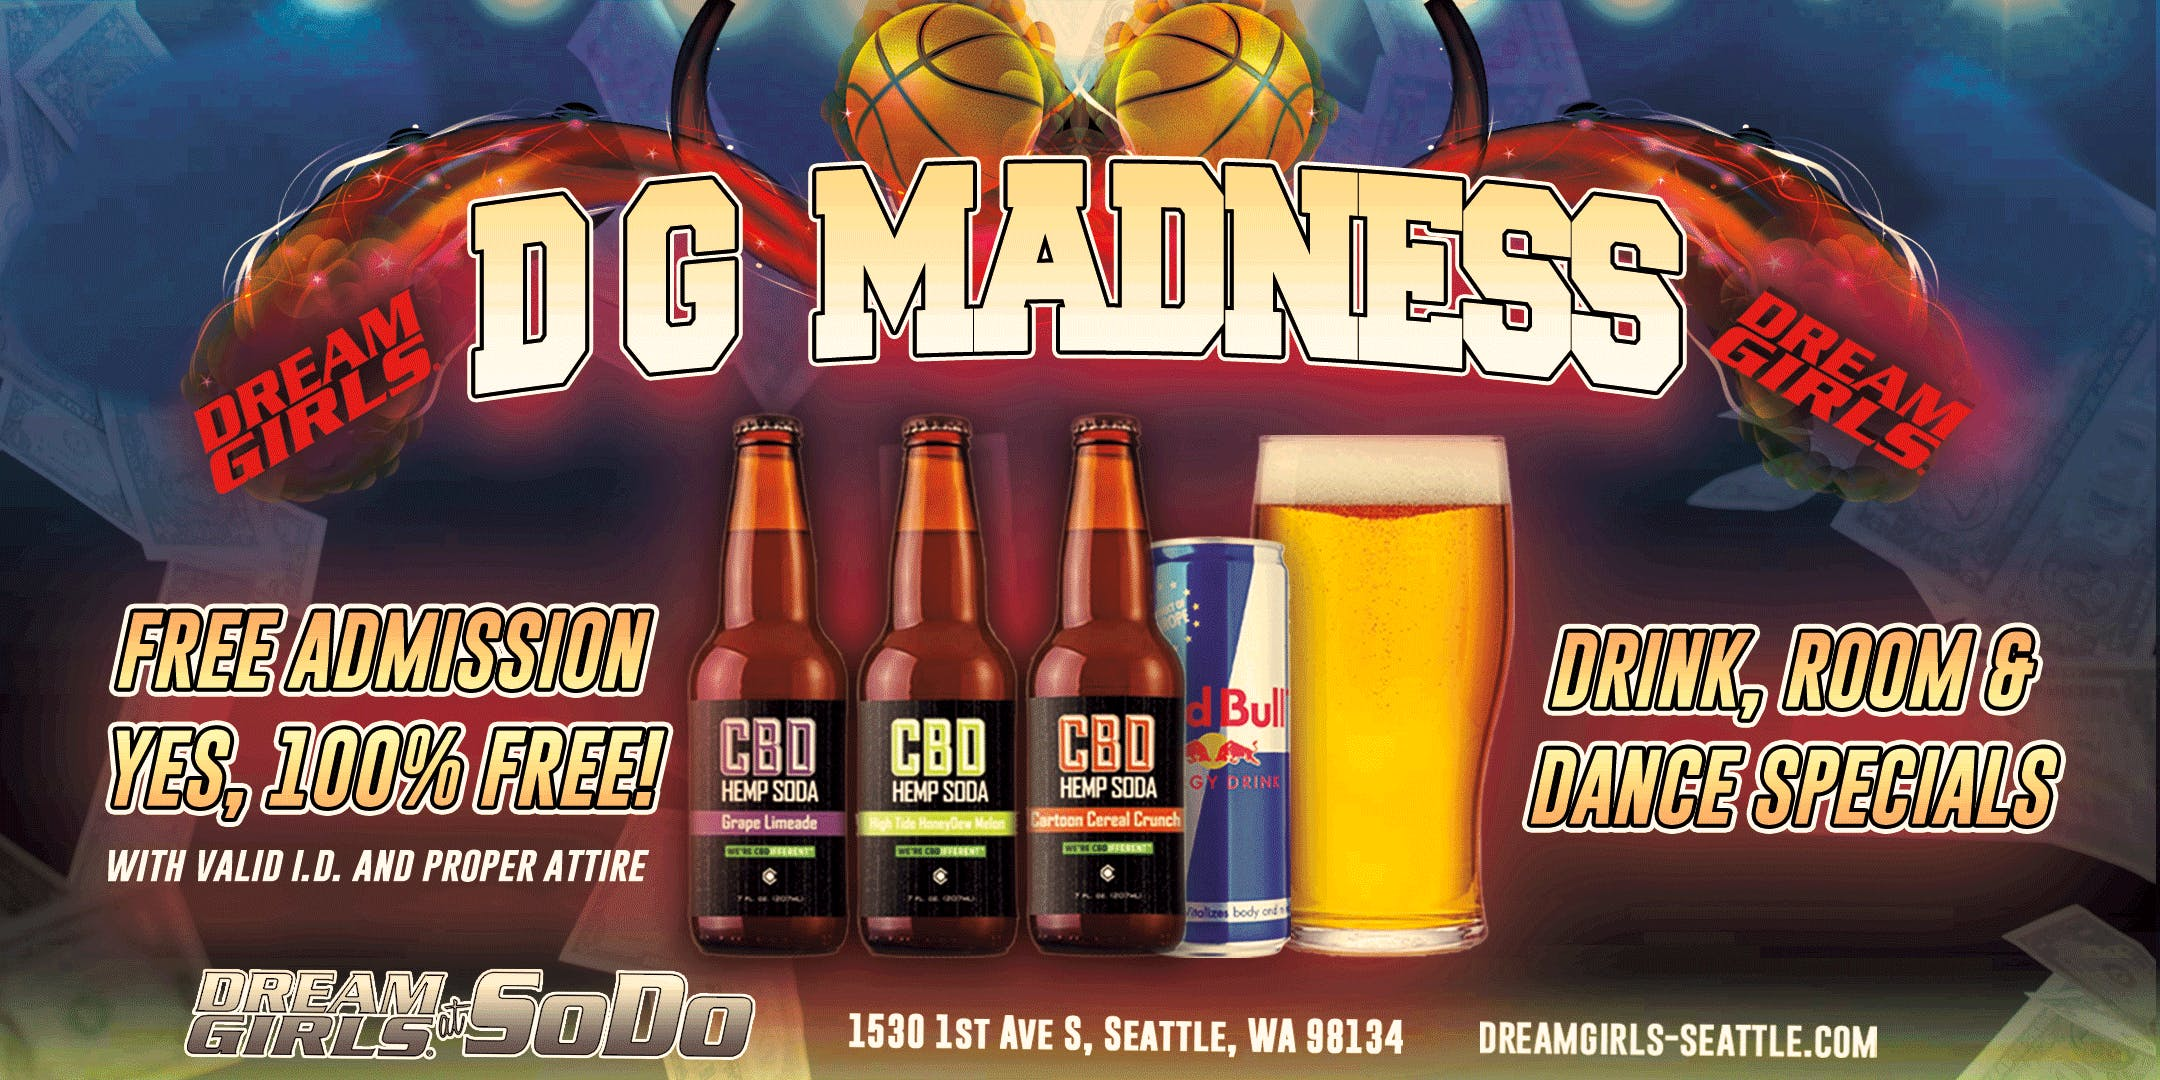 Dream Girls Madness! FREE Admission ALL MARCH!